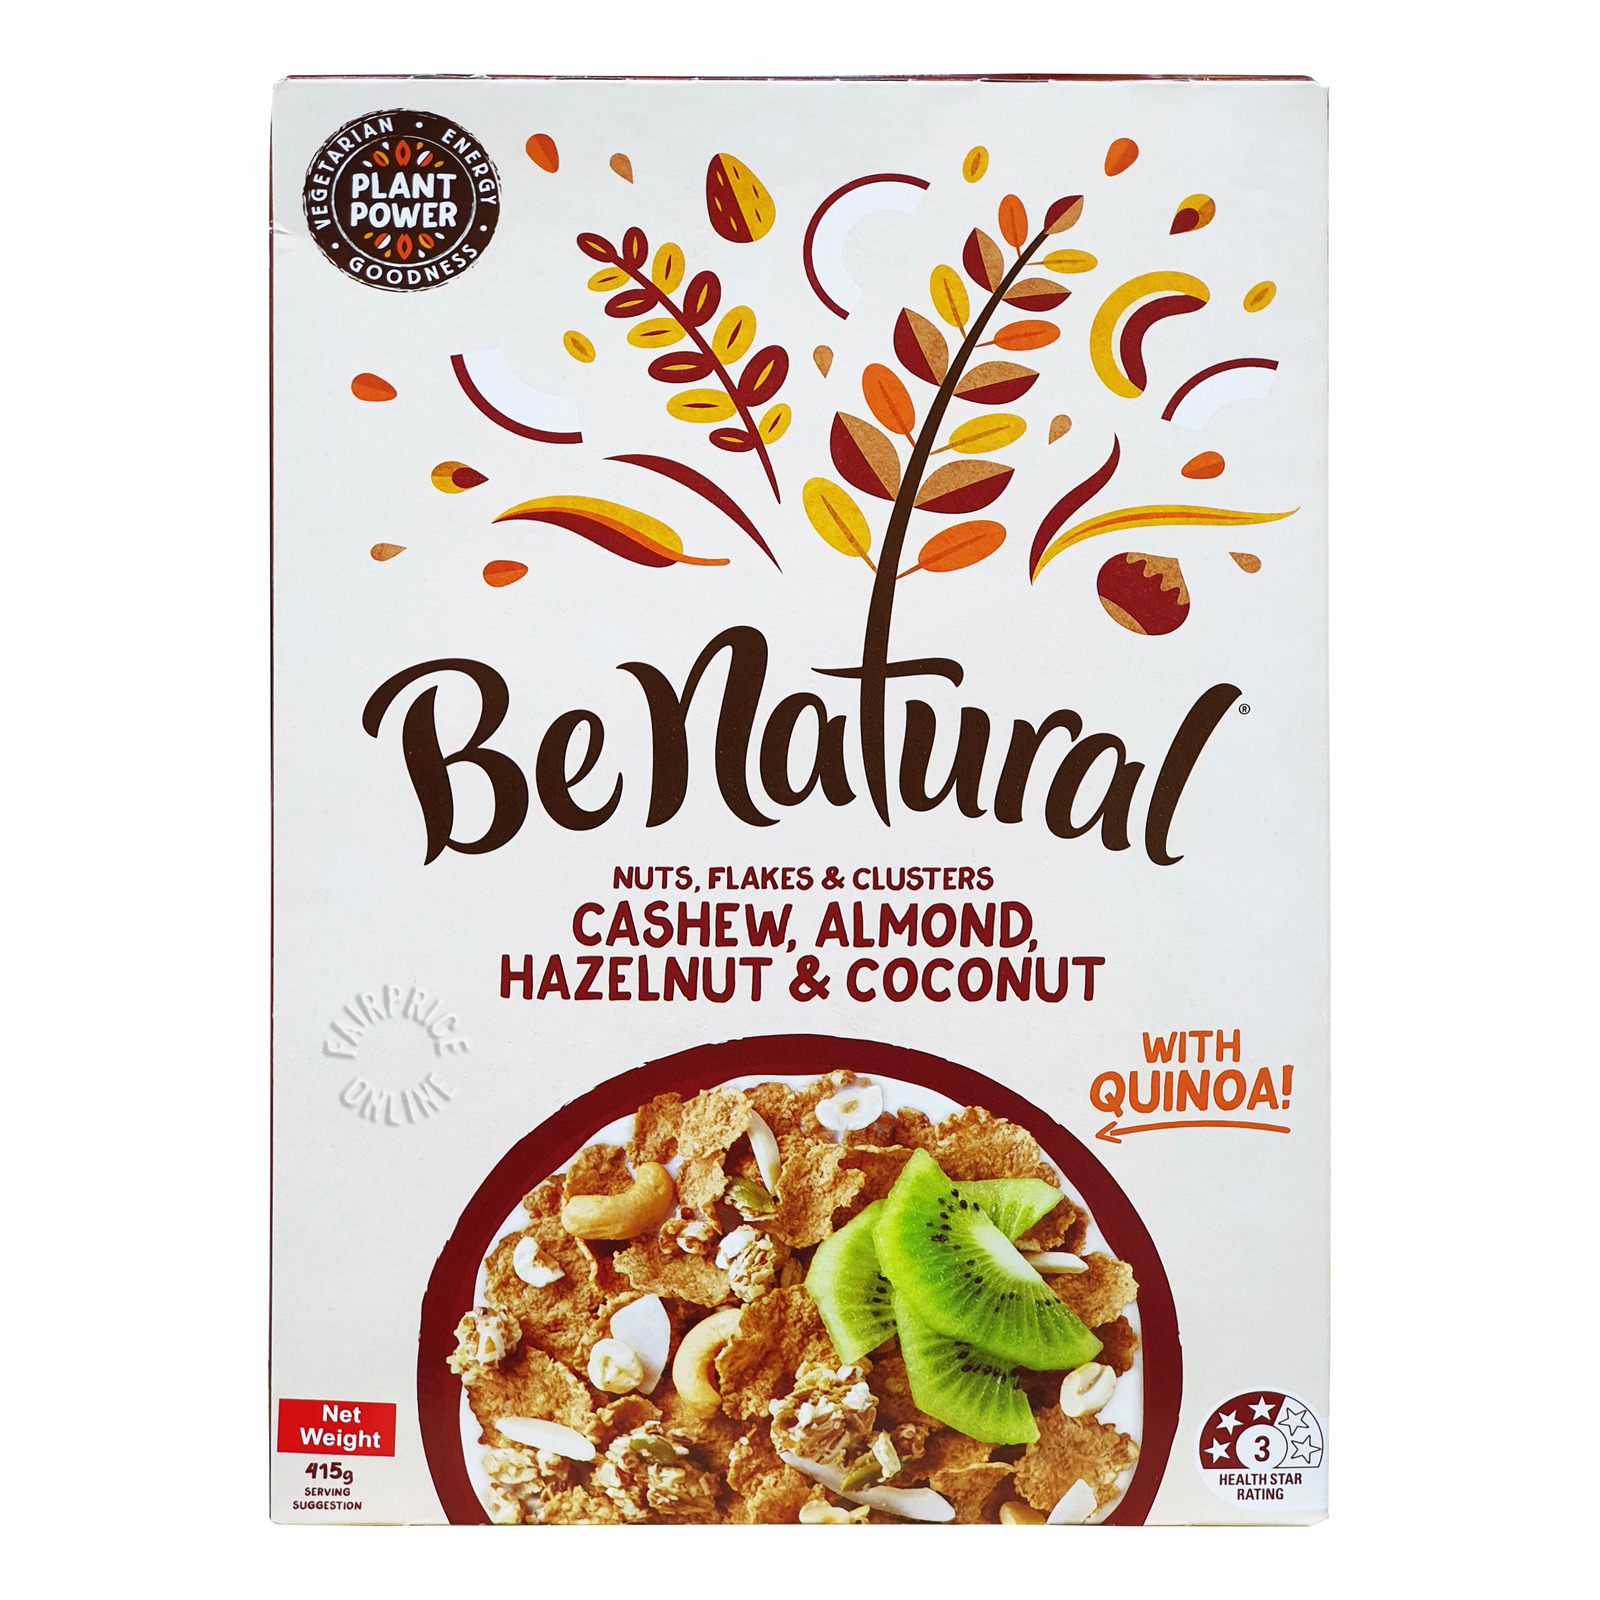 Be Natural Cereal - Cashew, Almond, Hazelnut & Coconut